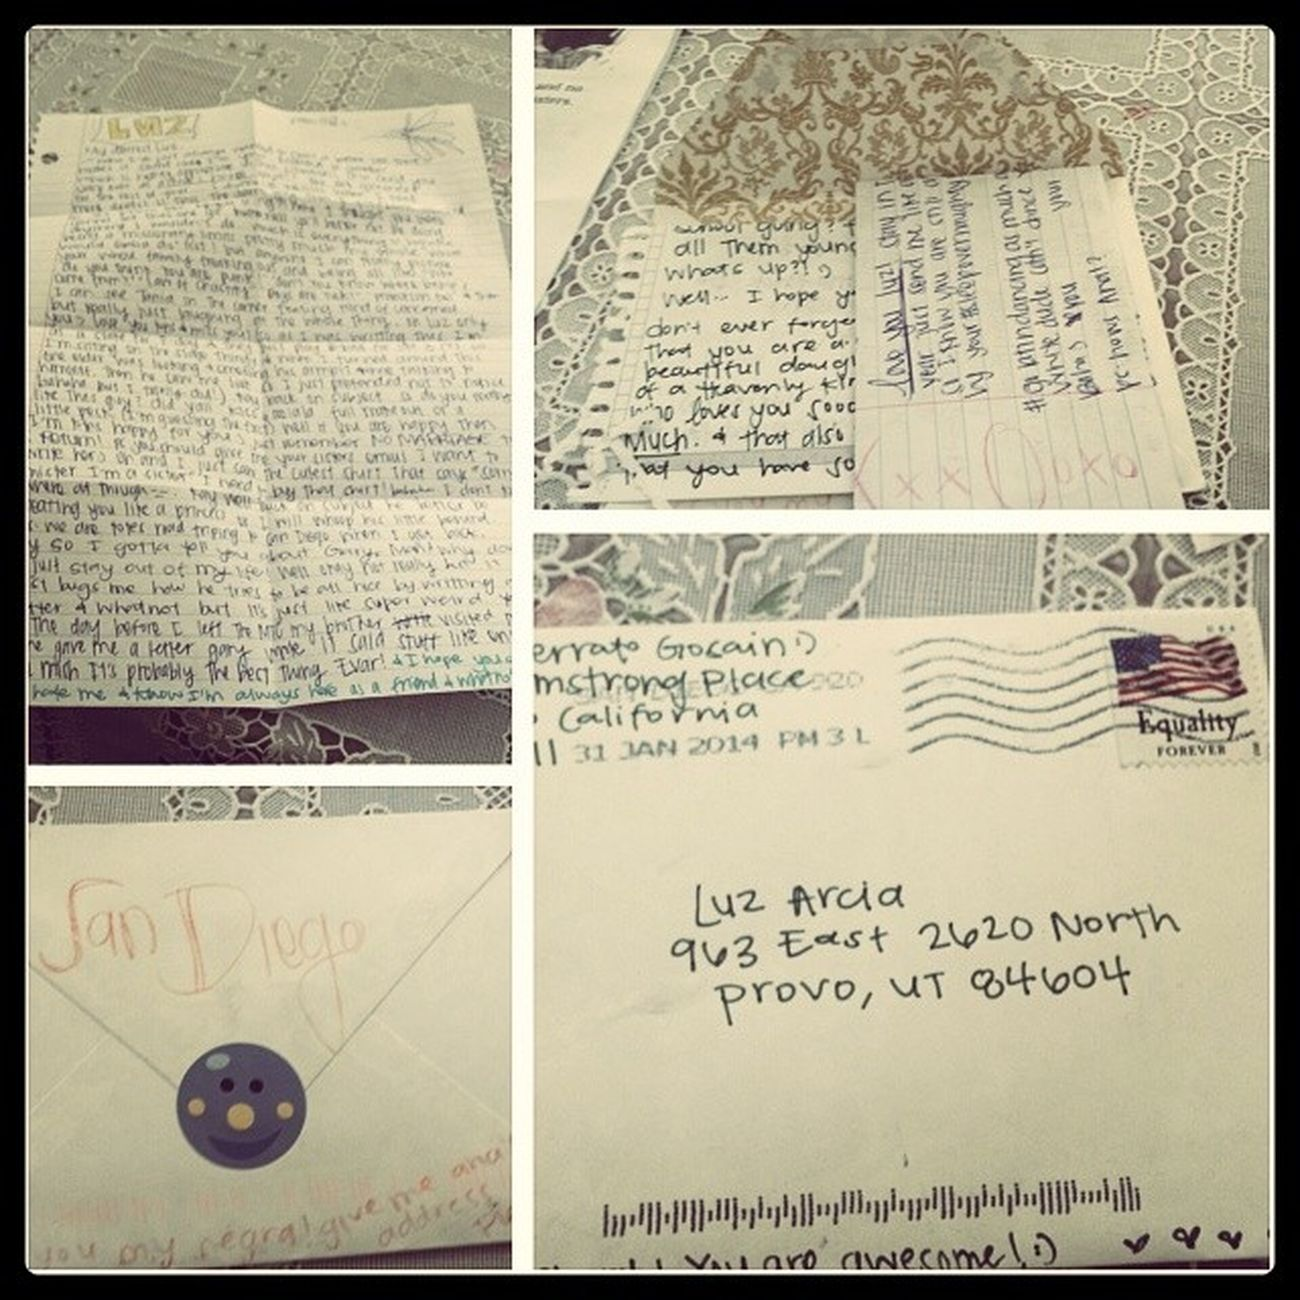 What I love most in this world is getting letters from my missionaries!! Lovemymissionaries Mydaycouldntgetbetterthanthis Sandiegoldsmission Missherlikecrazy sistergaliaserratogosain